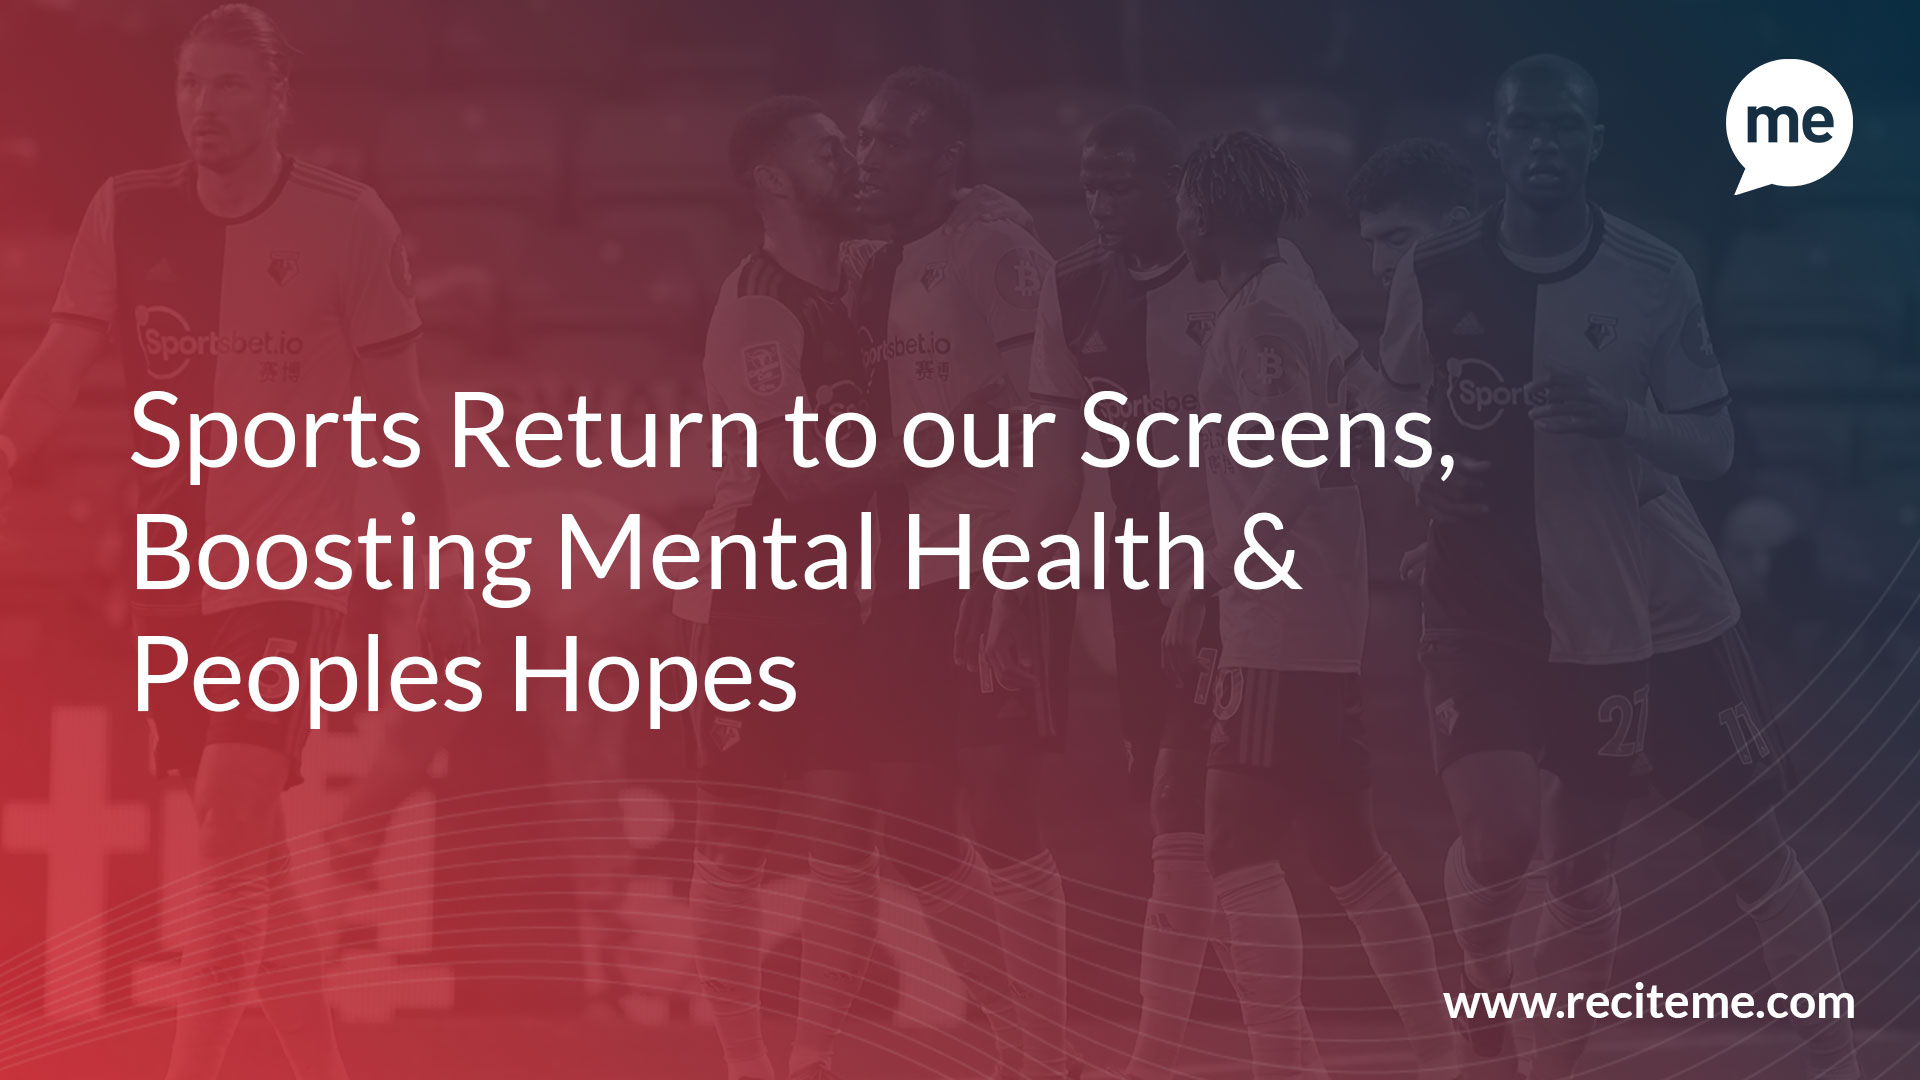 Sports Return to our Screens, Boosting Mental Health & Peoples Hopes